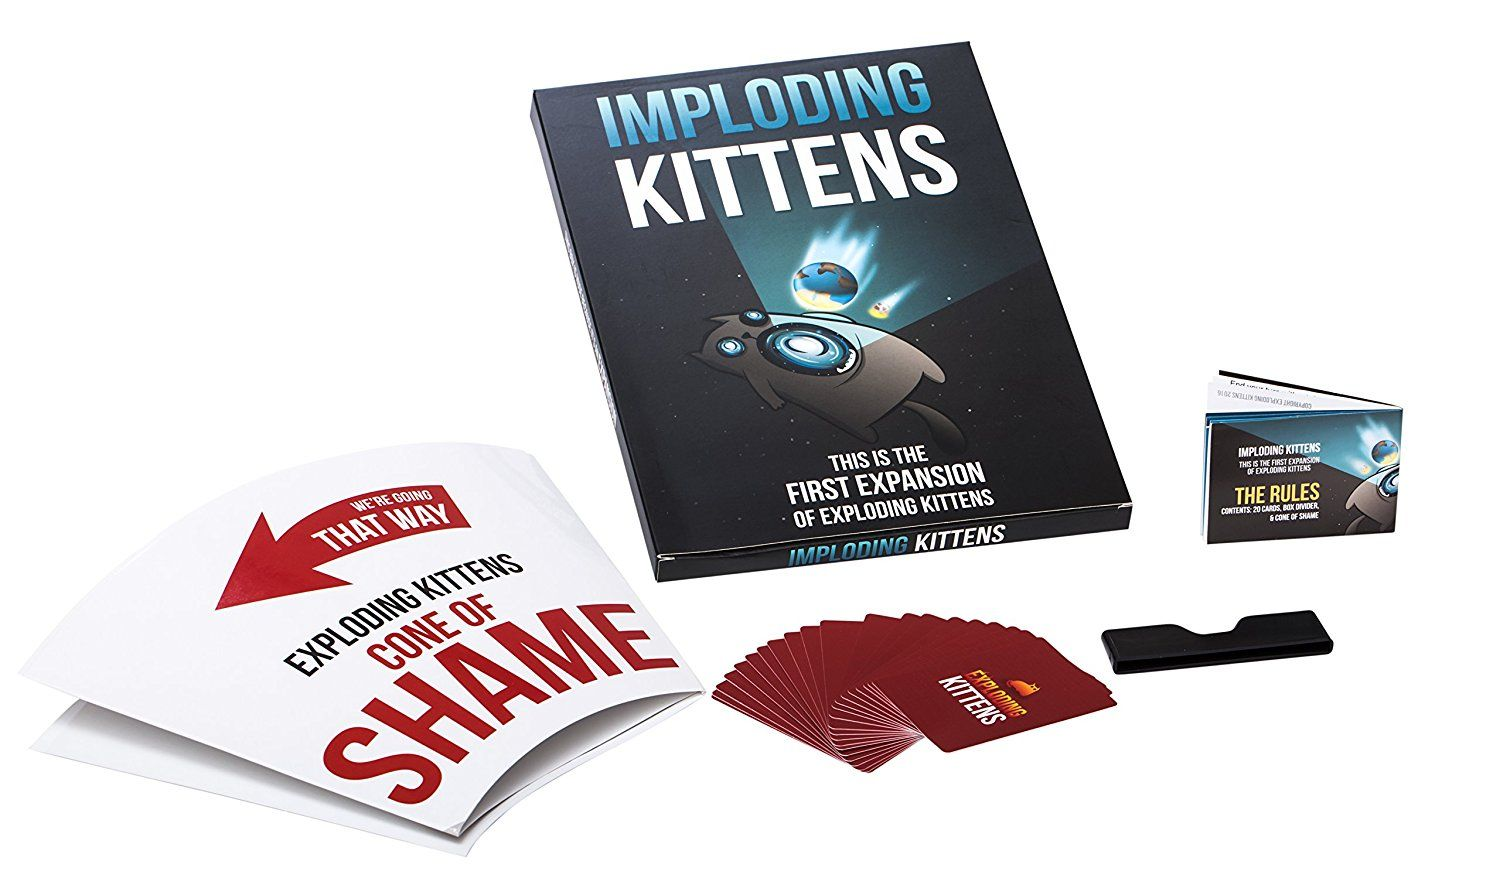 Cat Toys Interactive Imploding Kittens This Is The First Expansion Of Exploding Kittens You Can Exploding Kittens Card Game Exploding Kittens Card Games